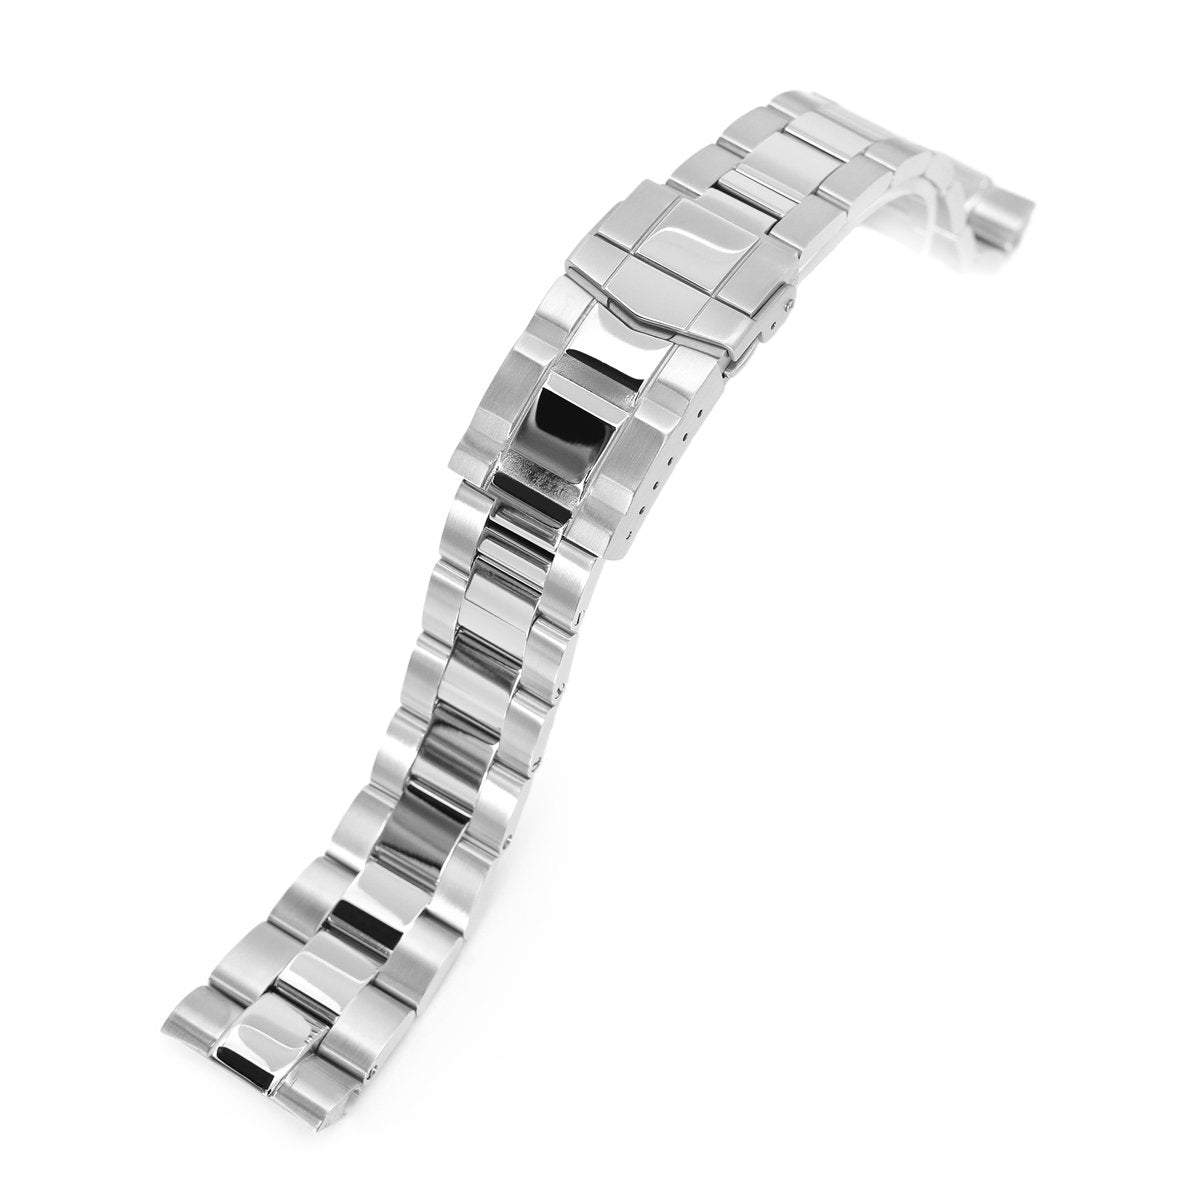 22mm Super-O Boyer 316L Stainless Steel Watch Bracelet for Seiko New Turtles SRP777 Brushed & Polished SUB Clasp Strapcode Watch Bands